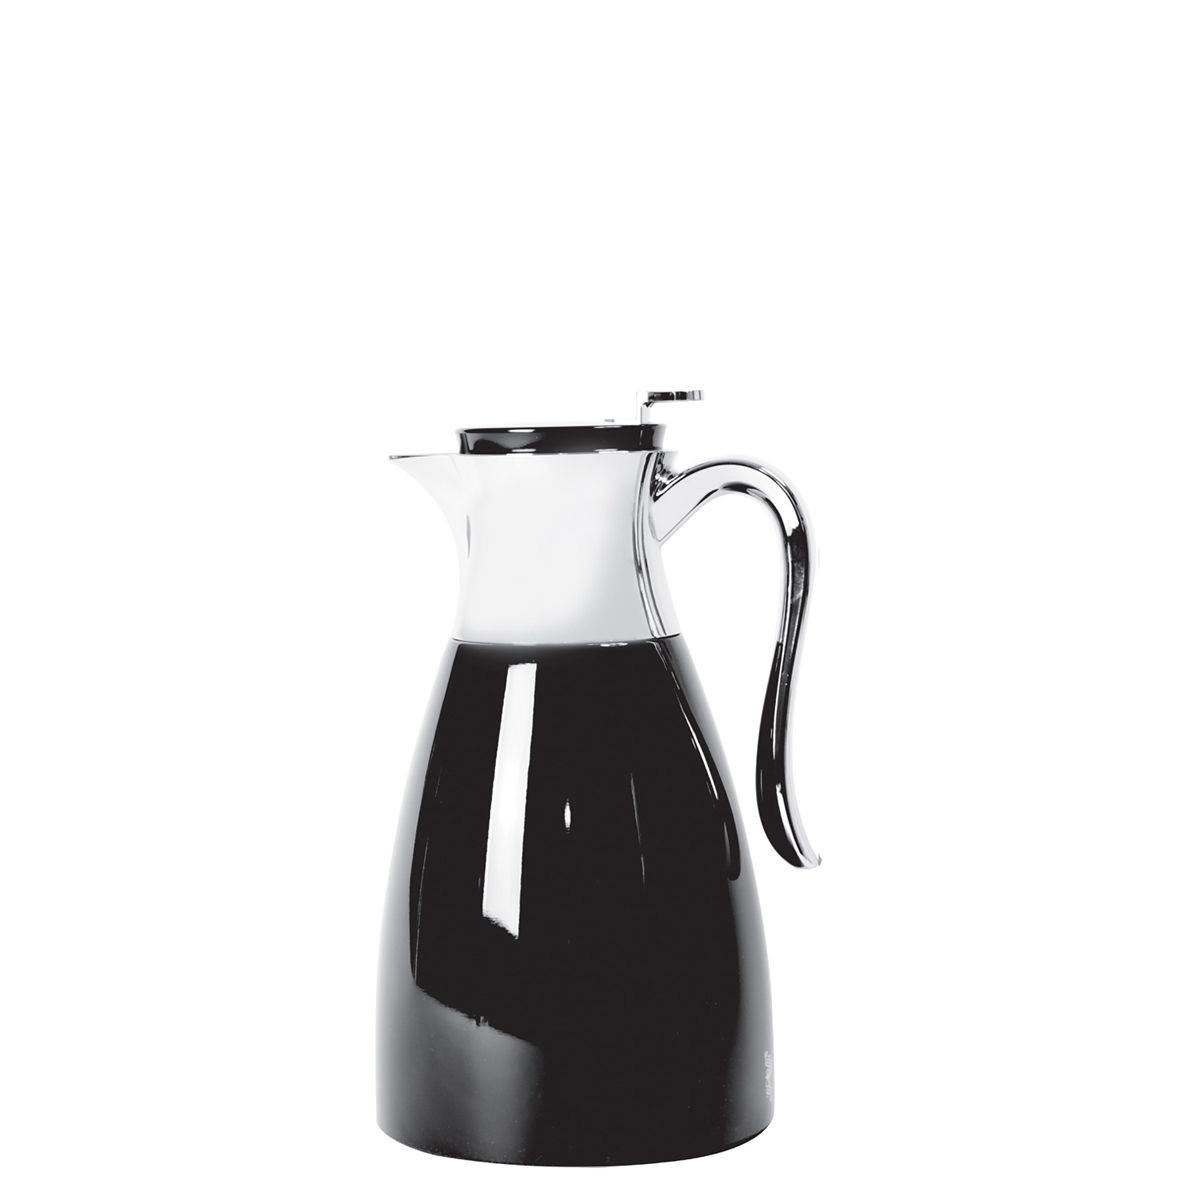 Service Ideas WES15BL Elegant Black / Chrome Server, 1.5 Liter